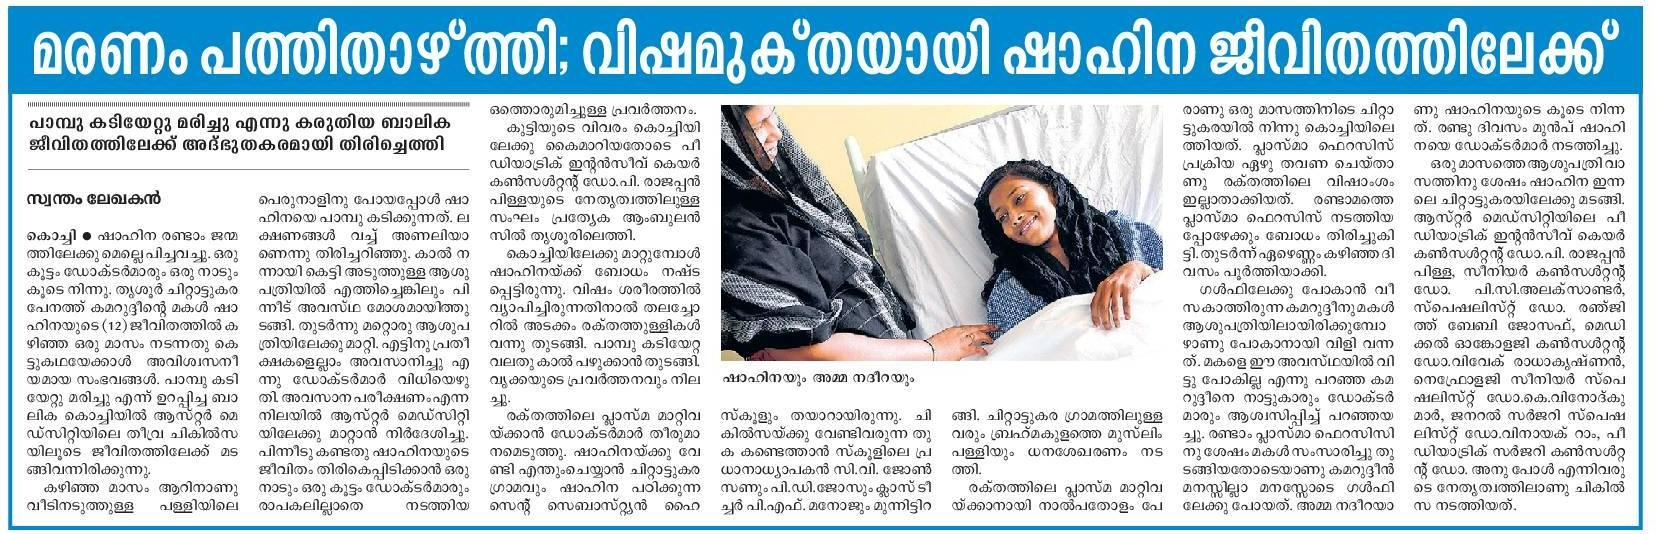 Malayala_Manorama_-_Shahina_-_Feb_7_201_1